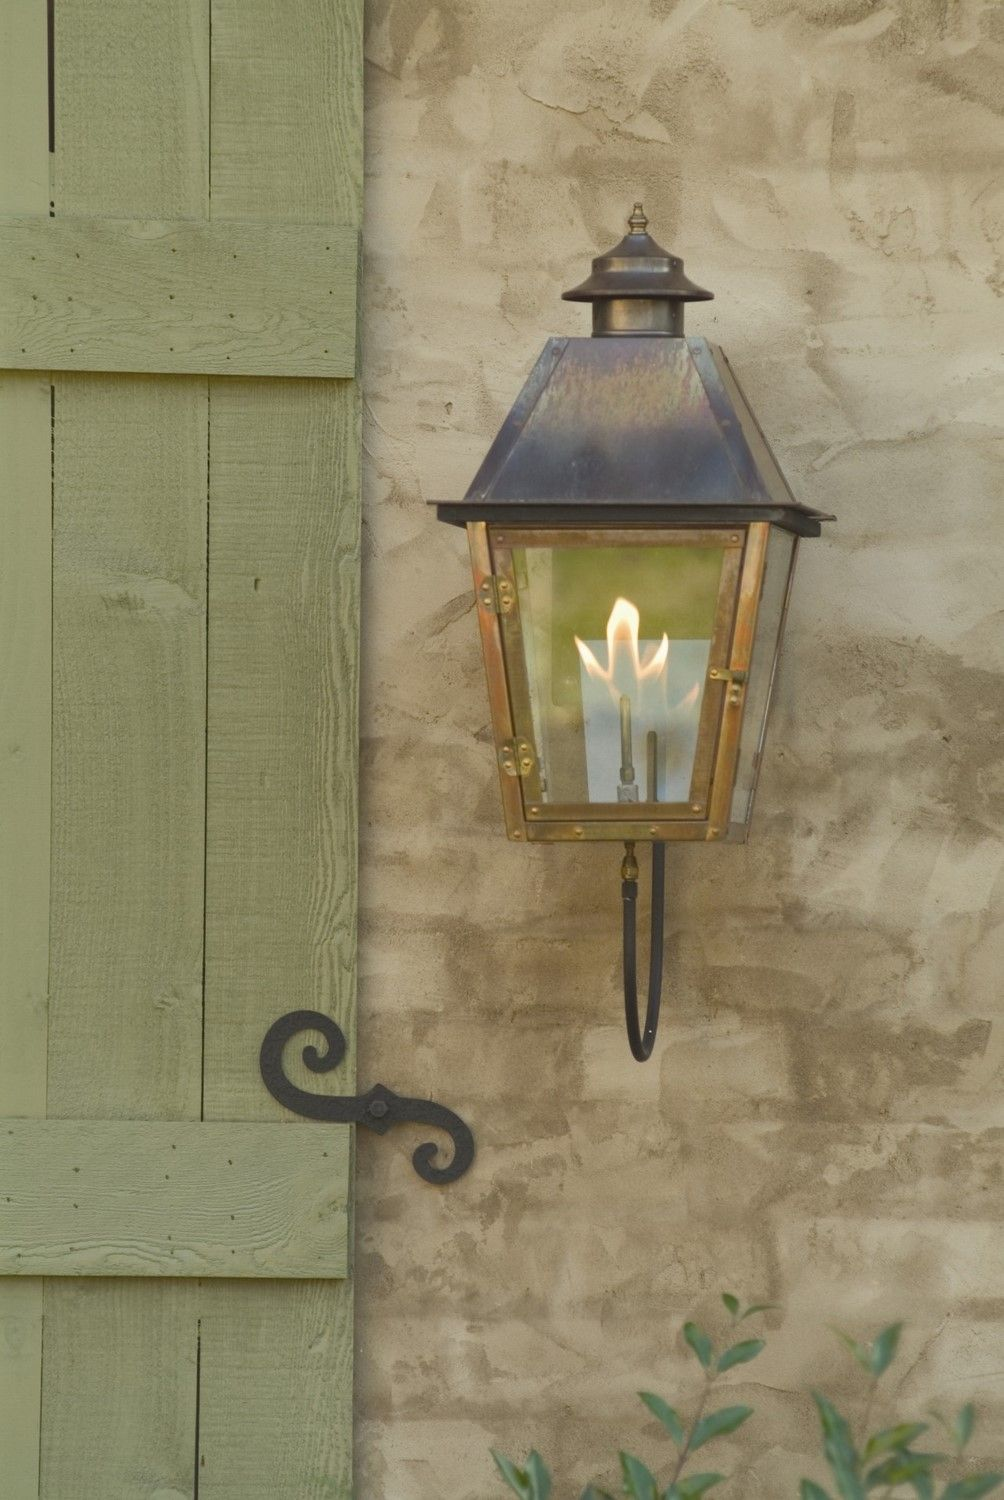 Wall Gas Lamps : Carolina Lanterns Gas Lamp Atlas Wall Mount Lighting Pinterest Wall mount, Walls and Gas ...